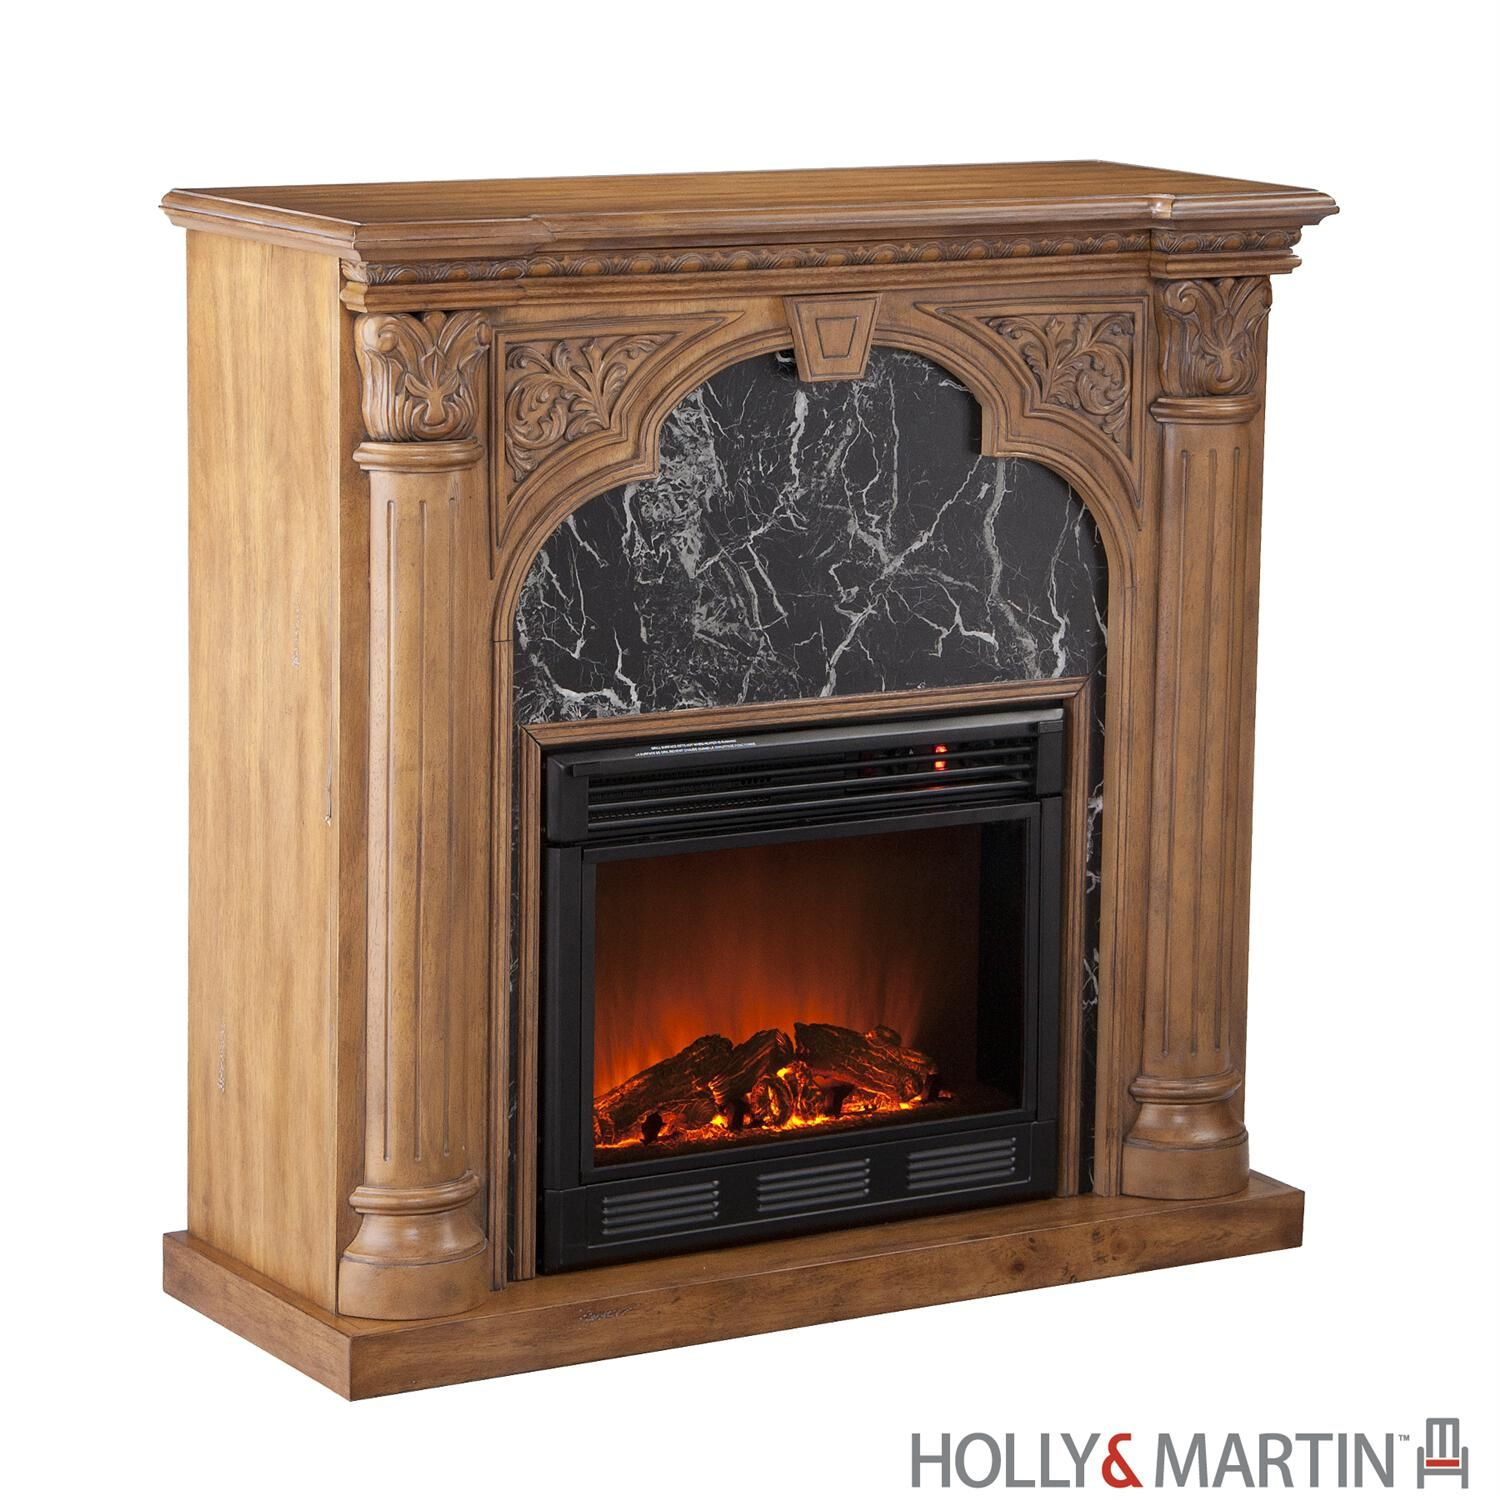 chimney free electric fireplace and tv stand of oak wood rh pinterest com